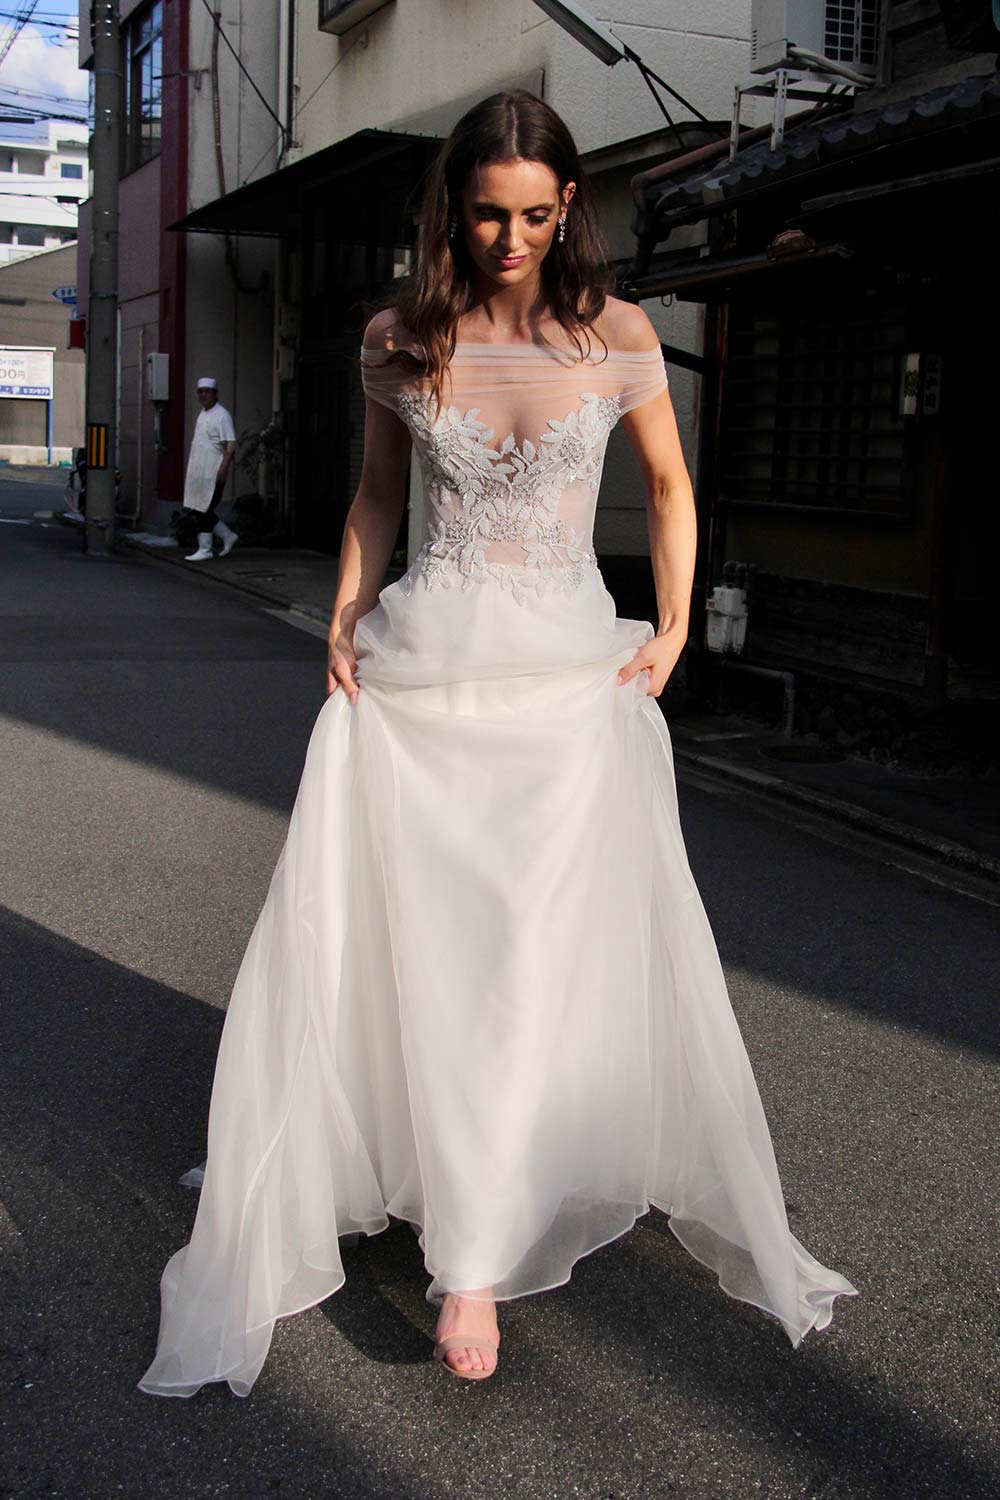 Female model wearing Vinka Design An Oriental Affair Wedding Dress. In a quiet japanese street the front detail of a boned, structured, semi-sheer bodice and a skirt made of soft silk organza.